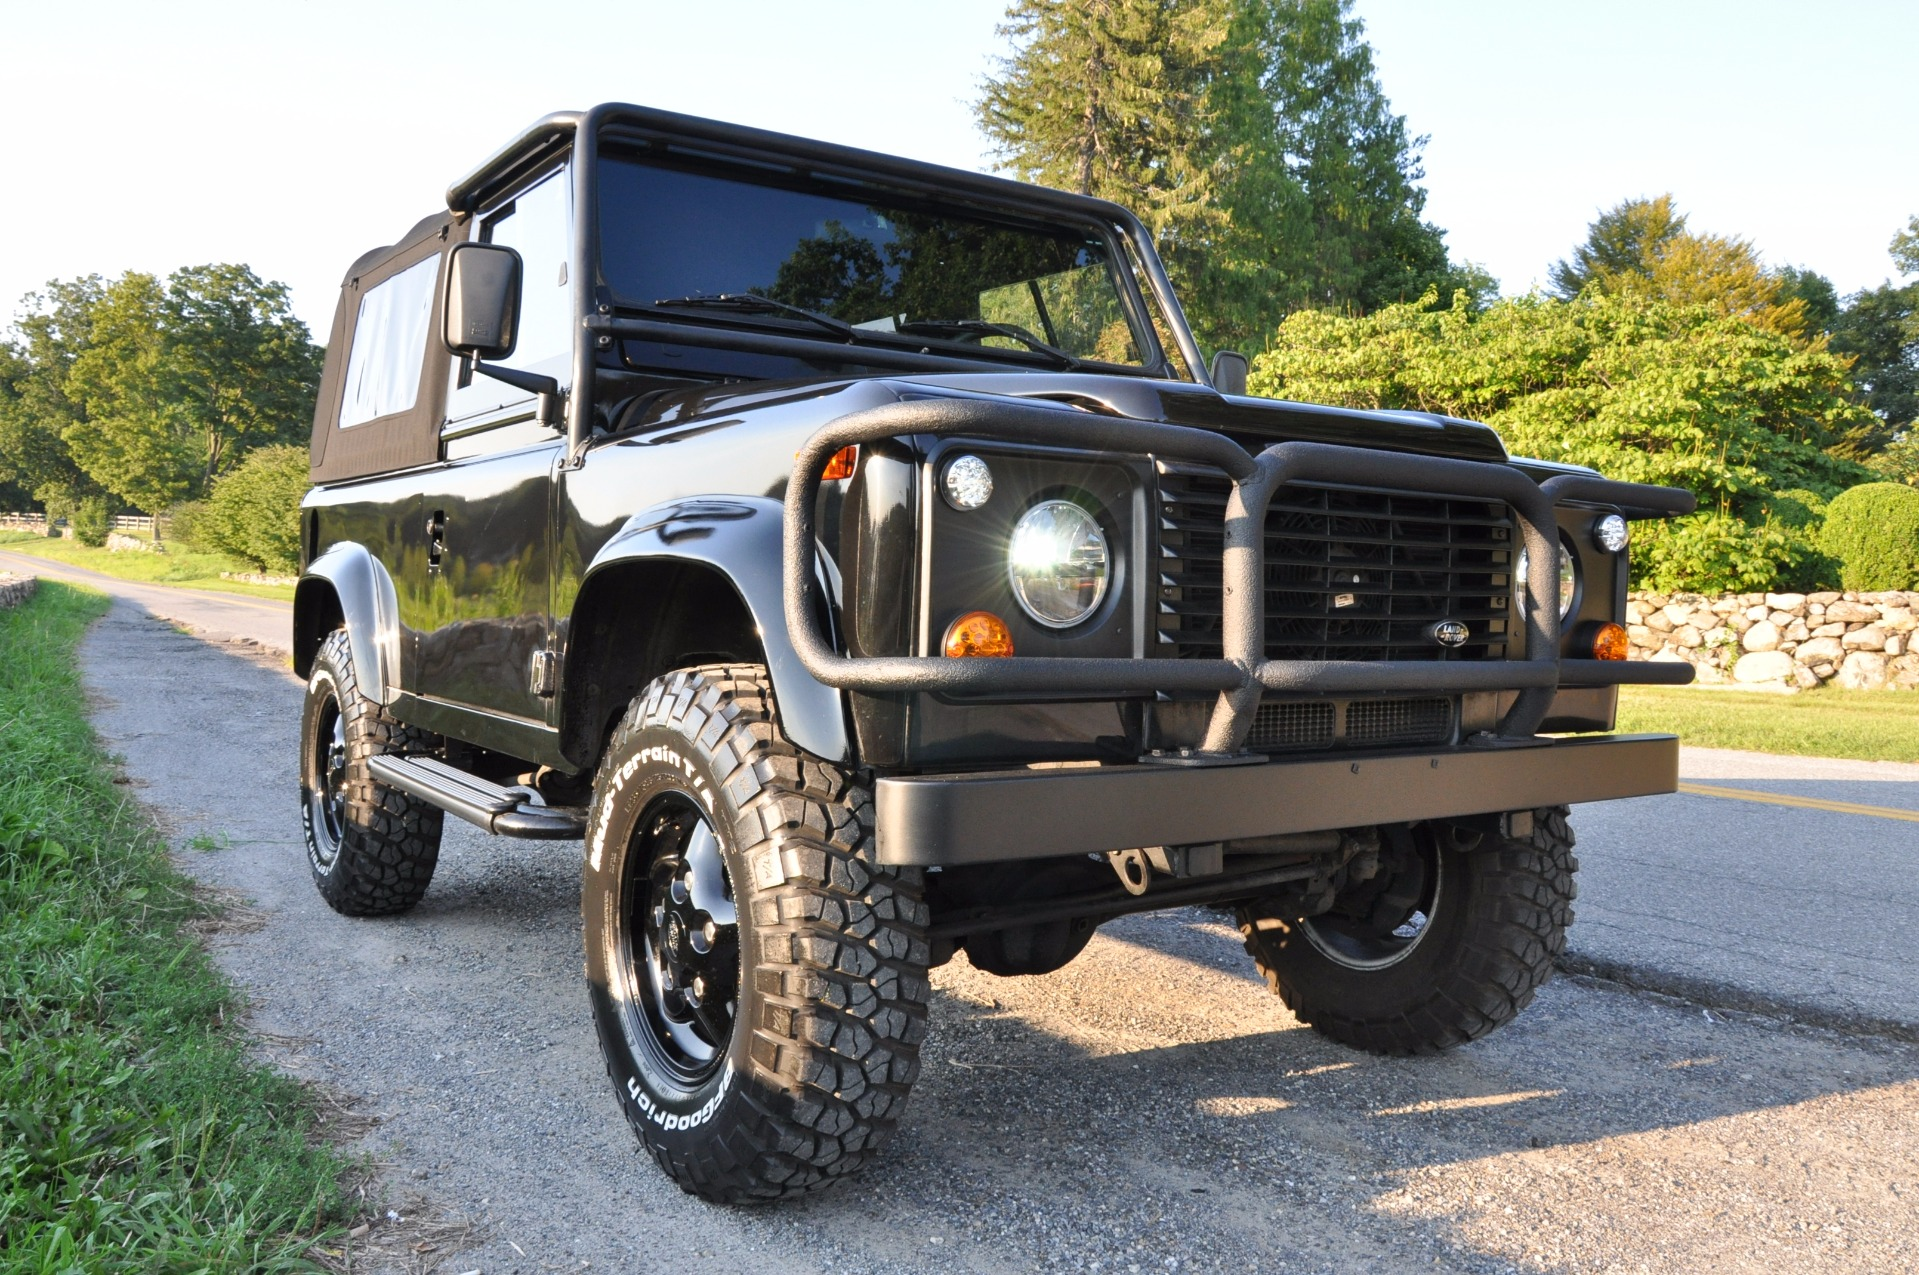 1997 Land Rover Defender 90 Stock # 1997 LAND ROVER